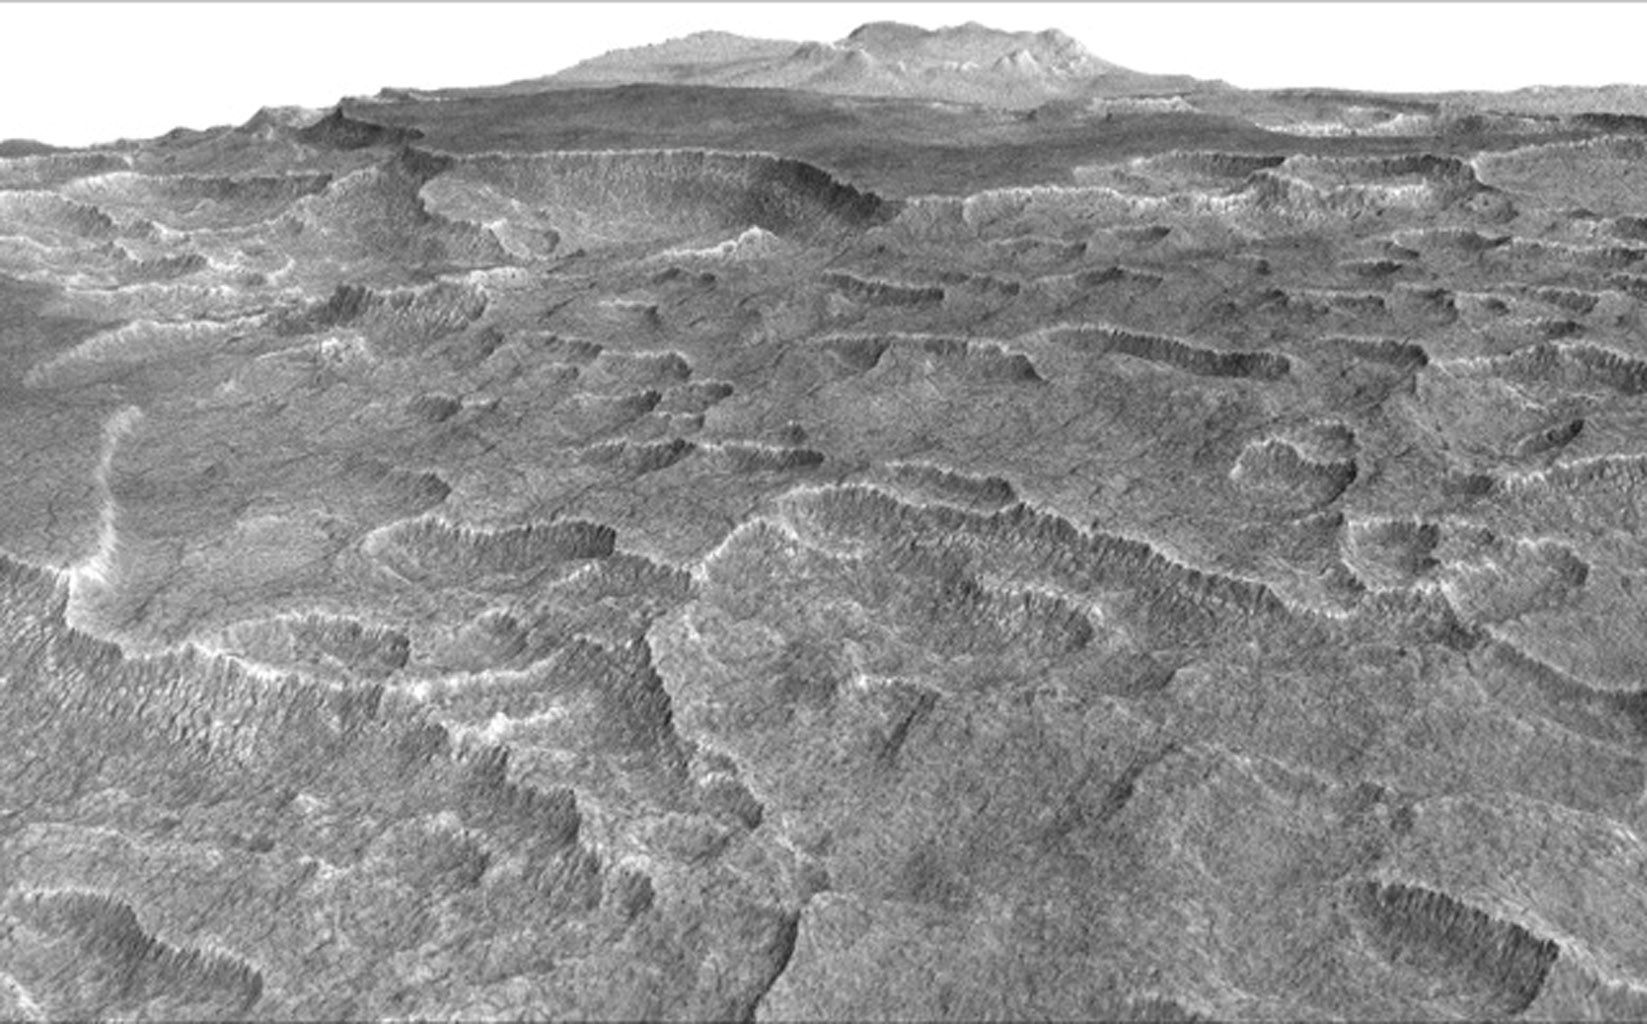 This vertically exaggerated view shows scalloped depressions in a part of Mars where such textures prompted researchers to check for buried ice, using ground-penetrating radar aboard NASA's Mars Reconnaissance Orbiter. Image Credit: NASA/JPL-Caltech/Univ. of Arizona